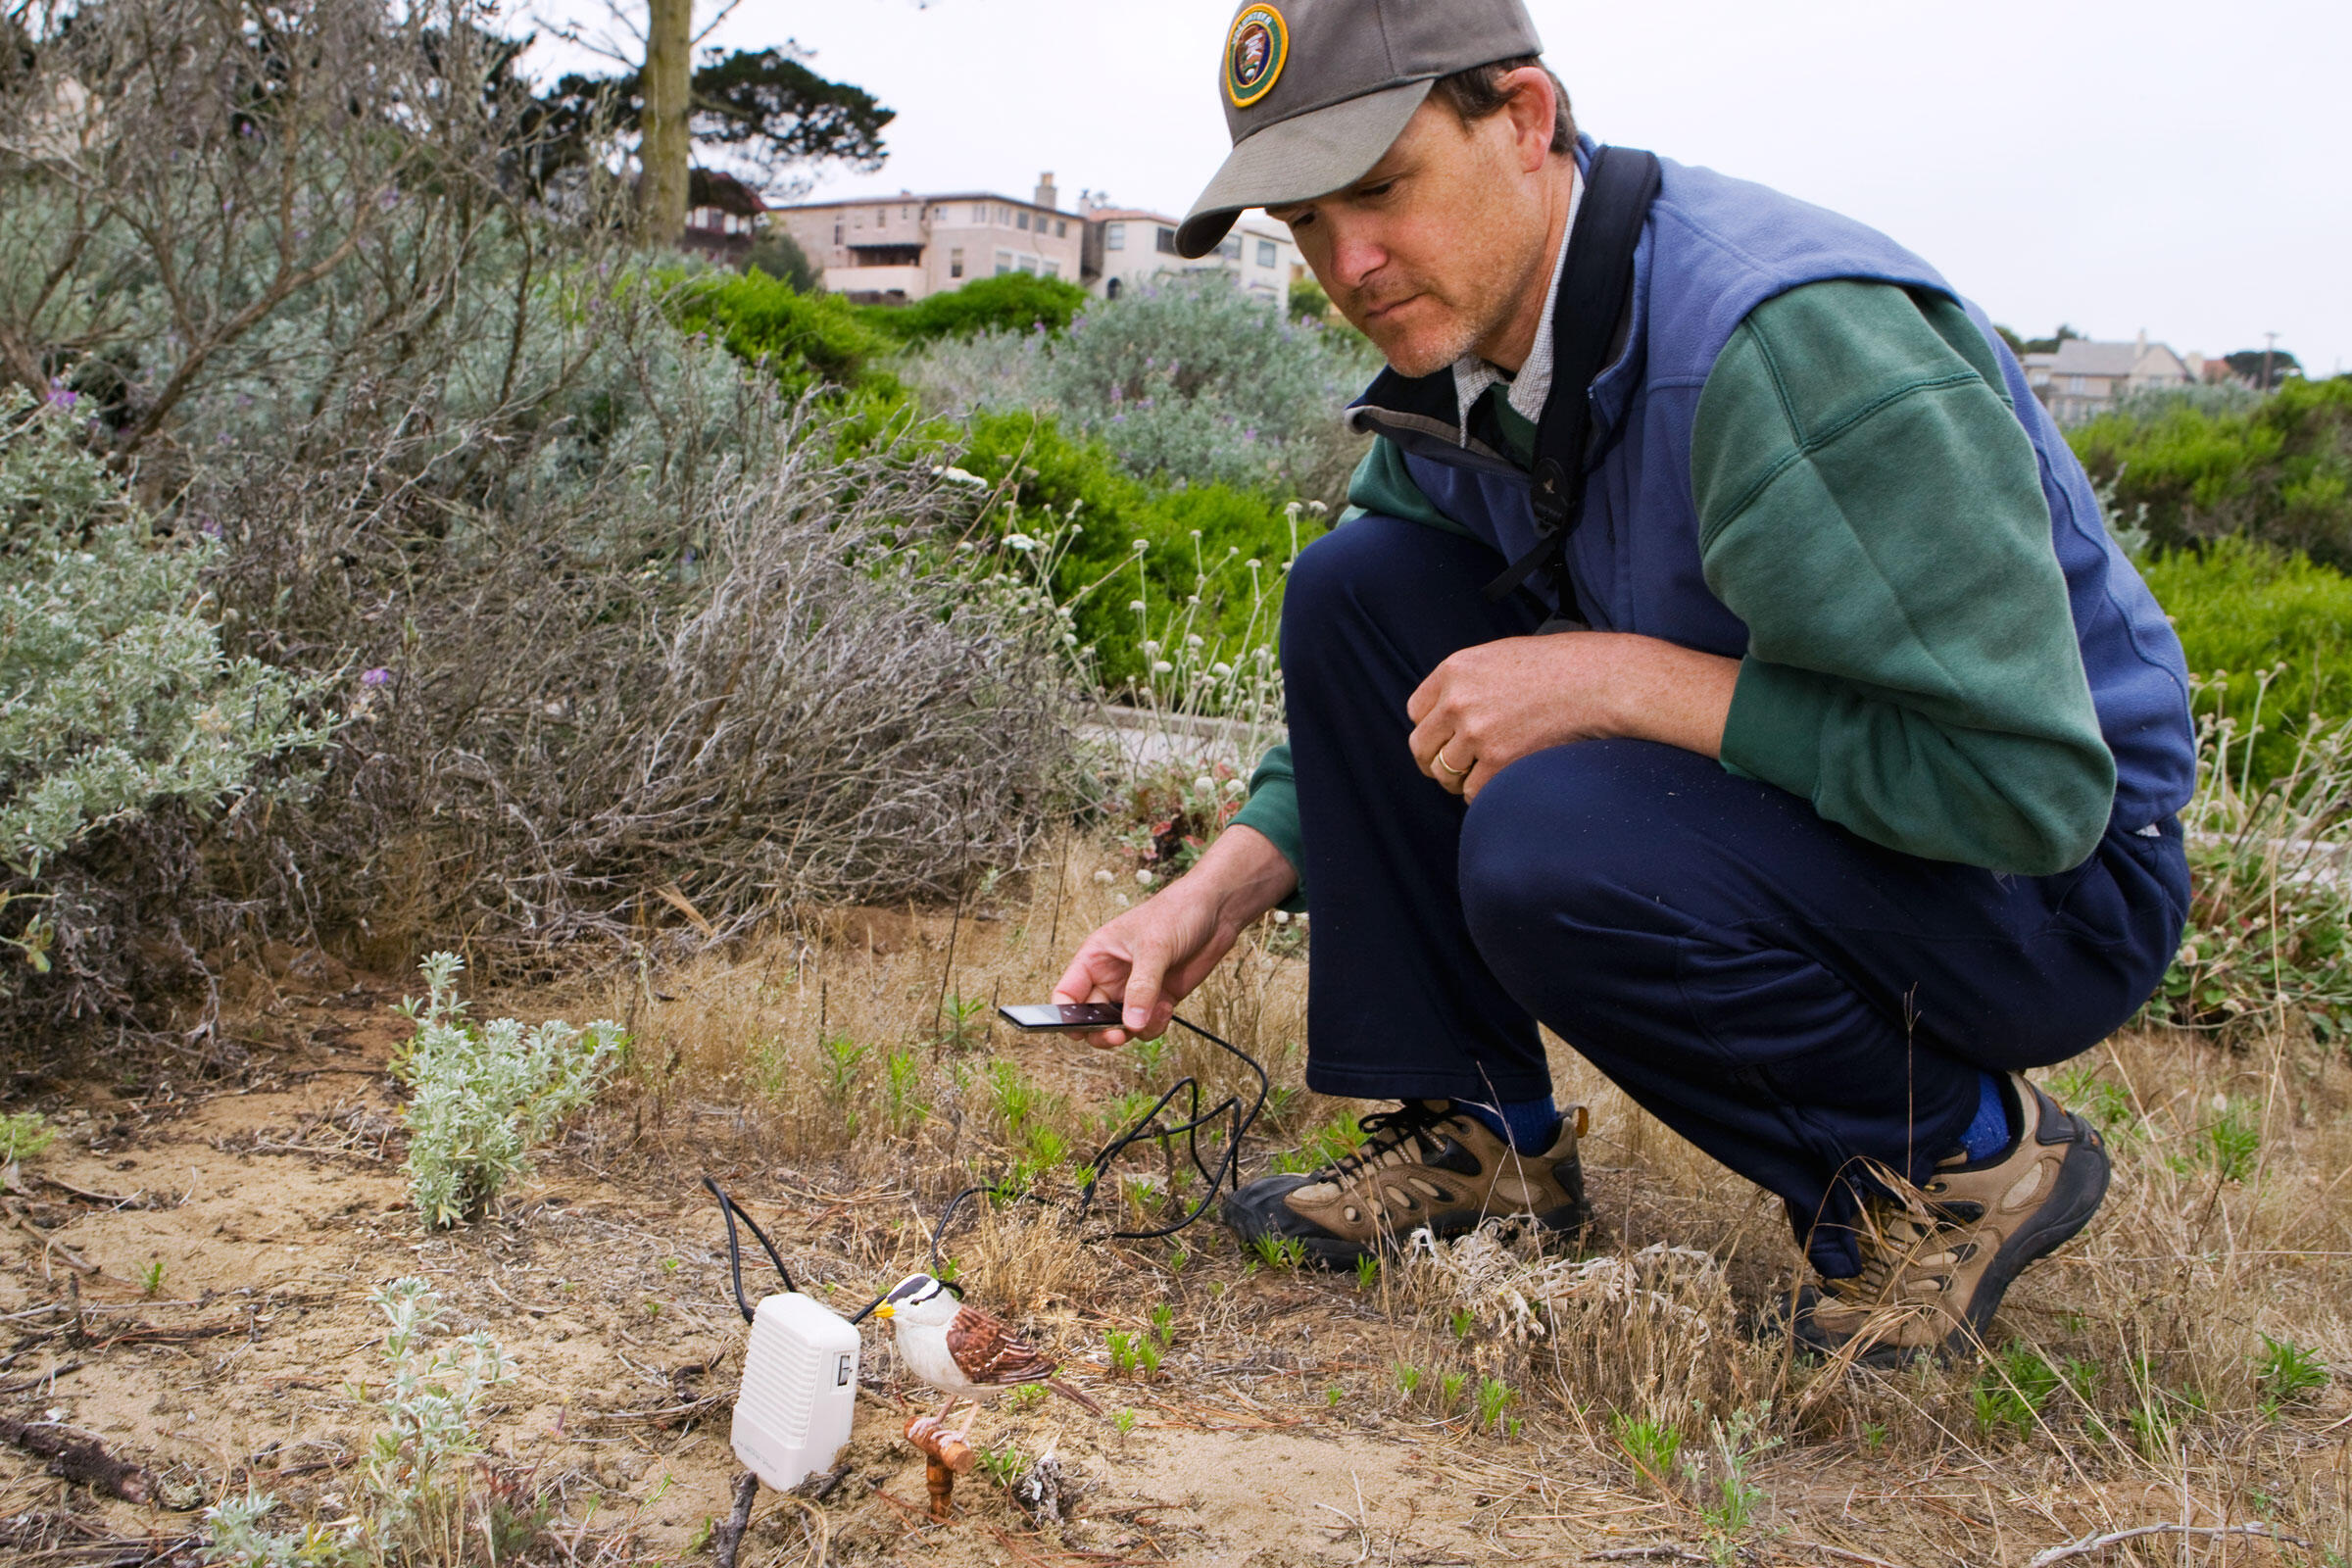 Biologist David Luther uses decoys and sound playbacks to study territorial responses of White-crowned Sparrows with different dialects in the Presidio section of San Francisco, California. Sebastian Kennerknecht/Minden Pictures